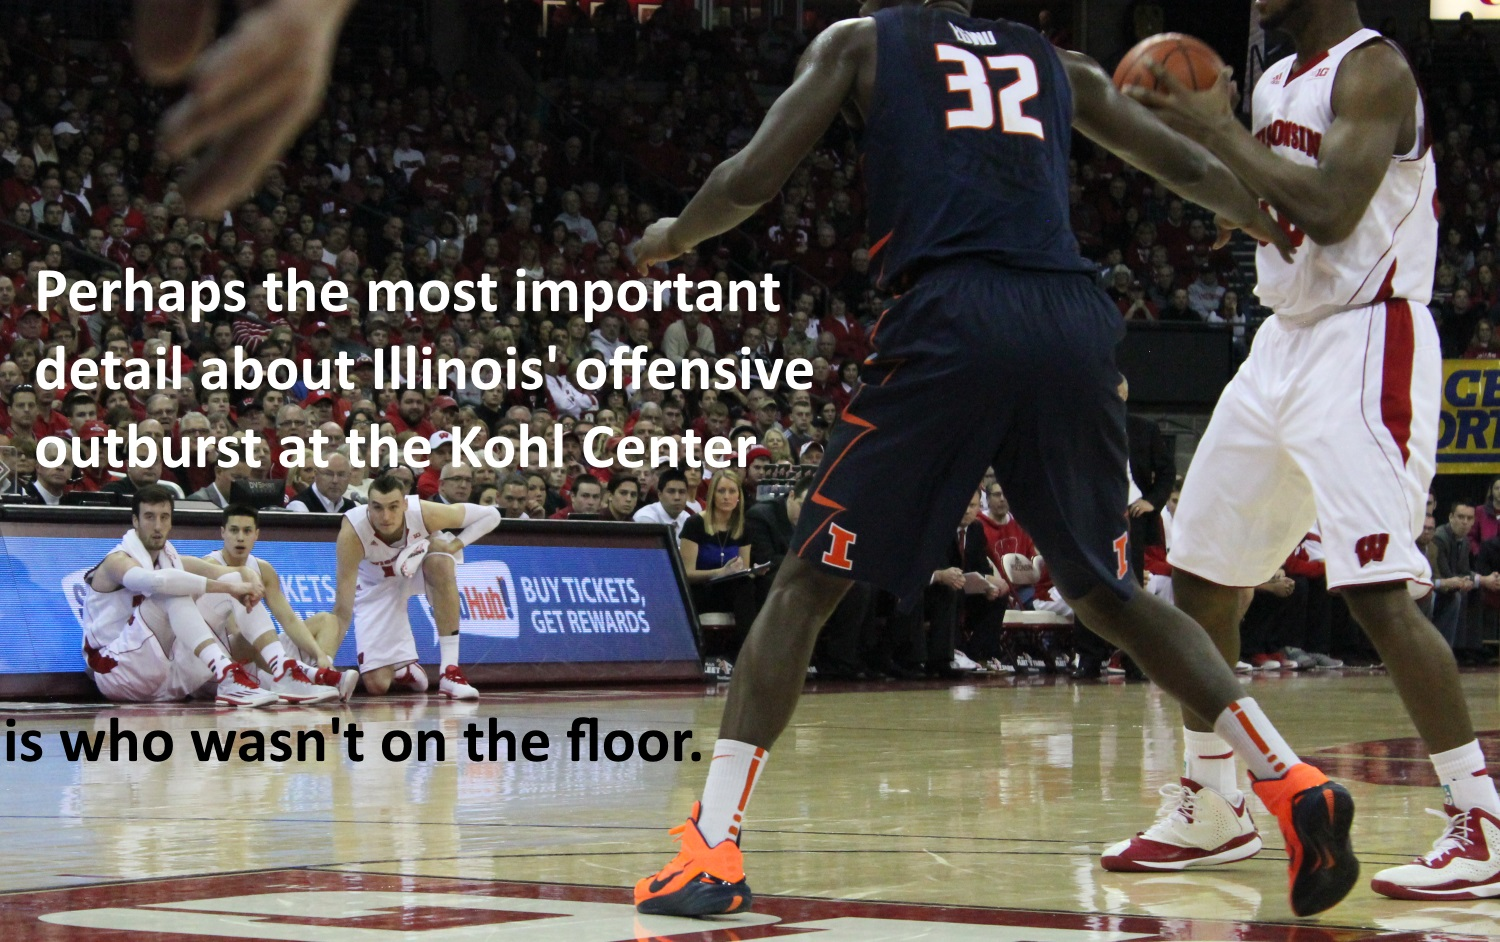 who was not on the floor for Illinois outburst at Kohl